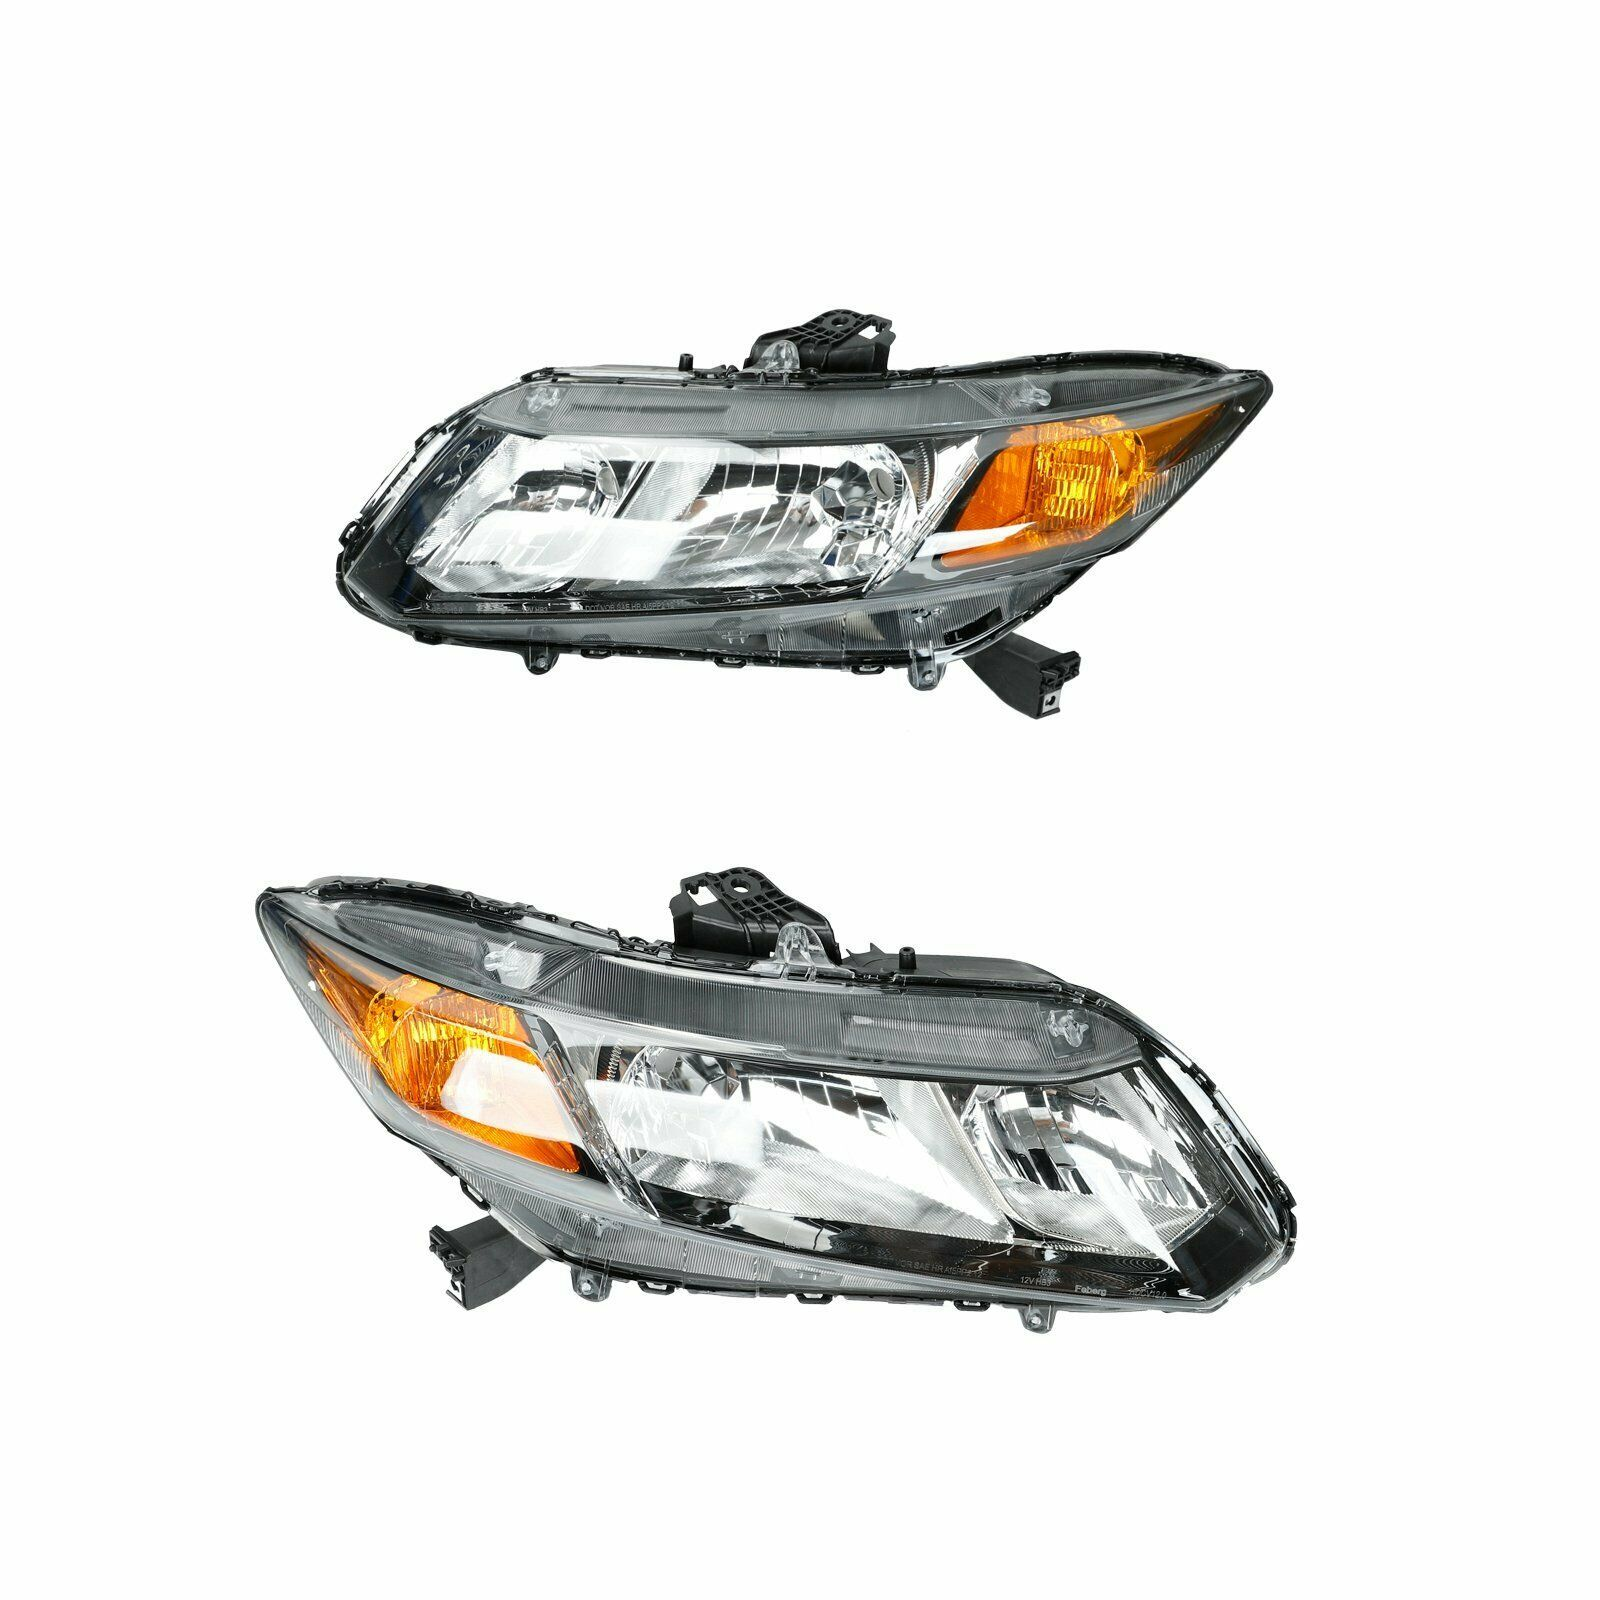 For 2012-2015 Honda Civic 4Dr Sedan Headlights Headlamps Replacement Left+Right - $149.68